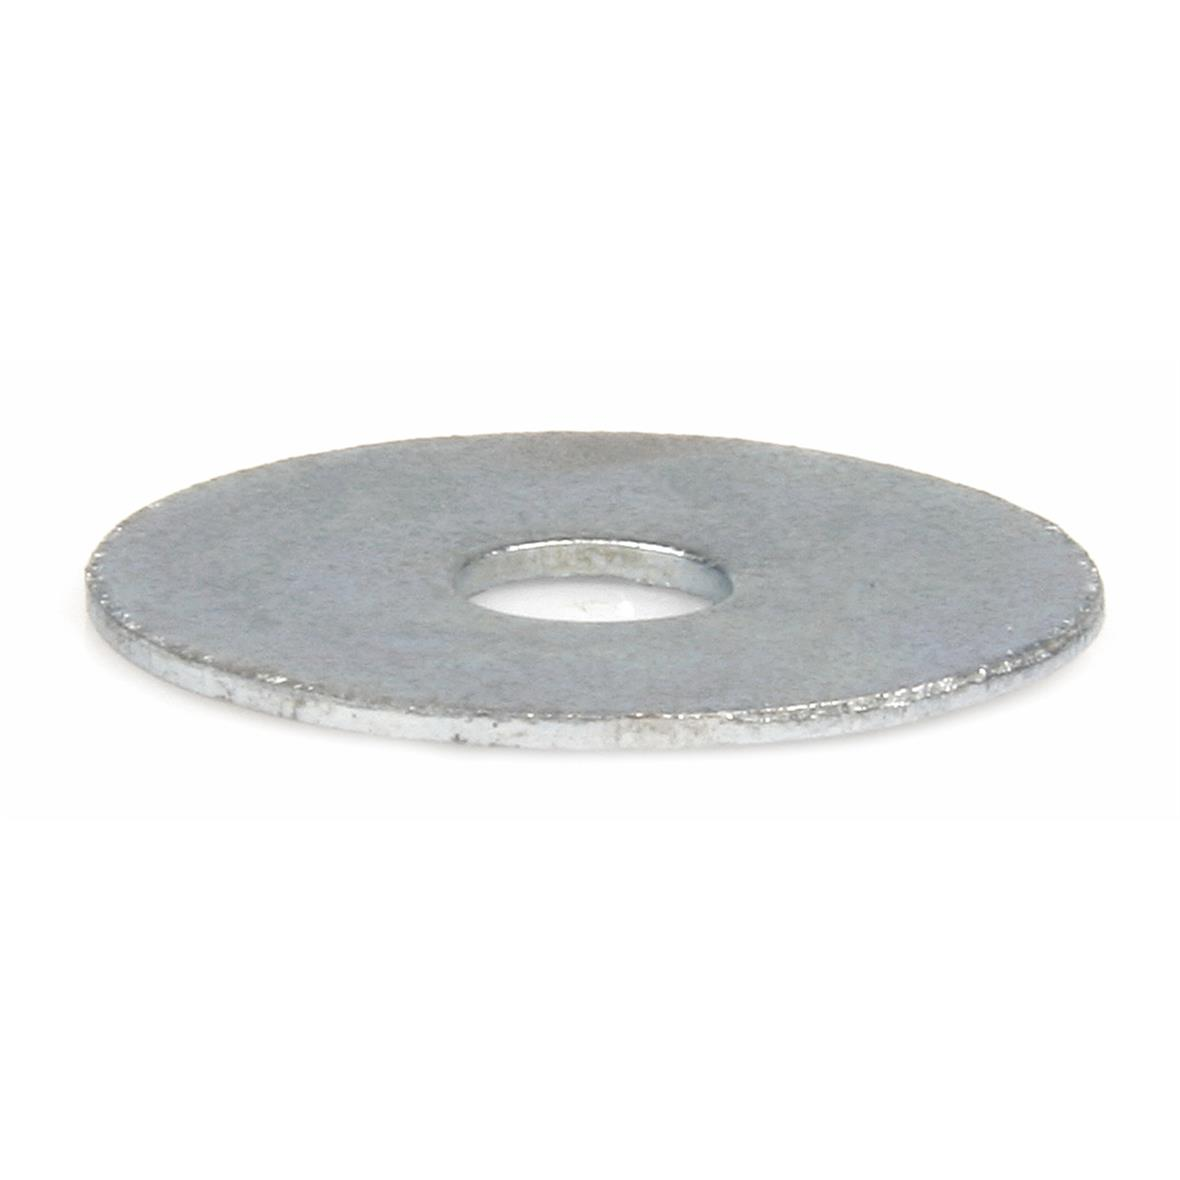 Product Image for 'Washer electronic unit Ø 5,3x20 mm (th) 1,5mmTitle'